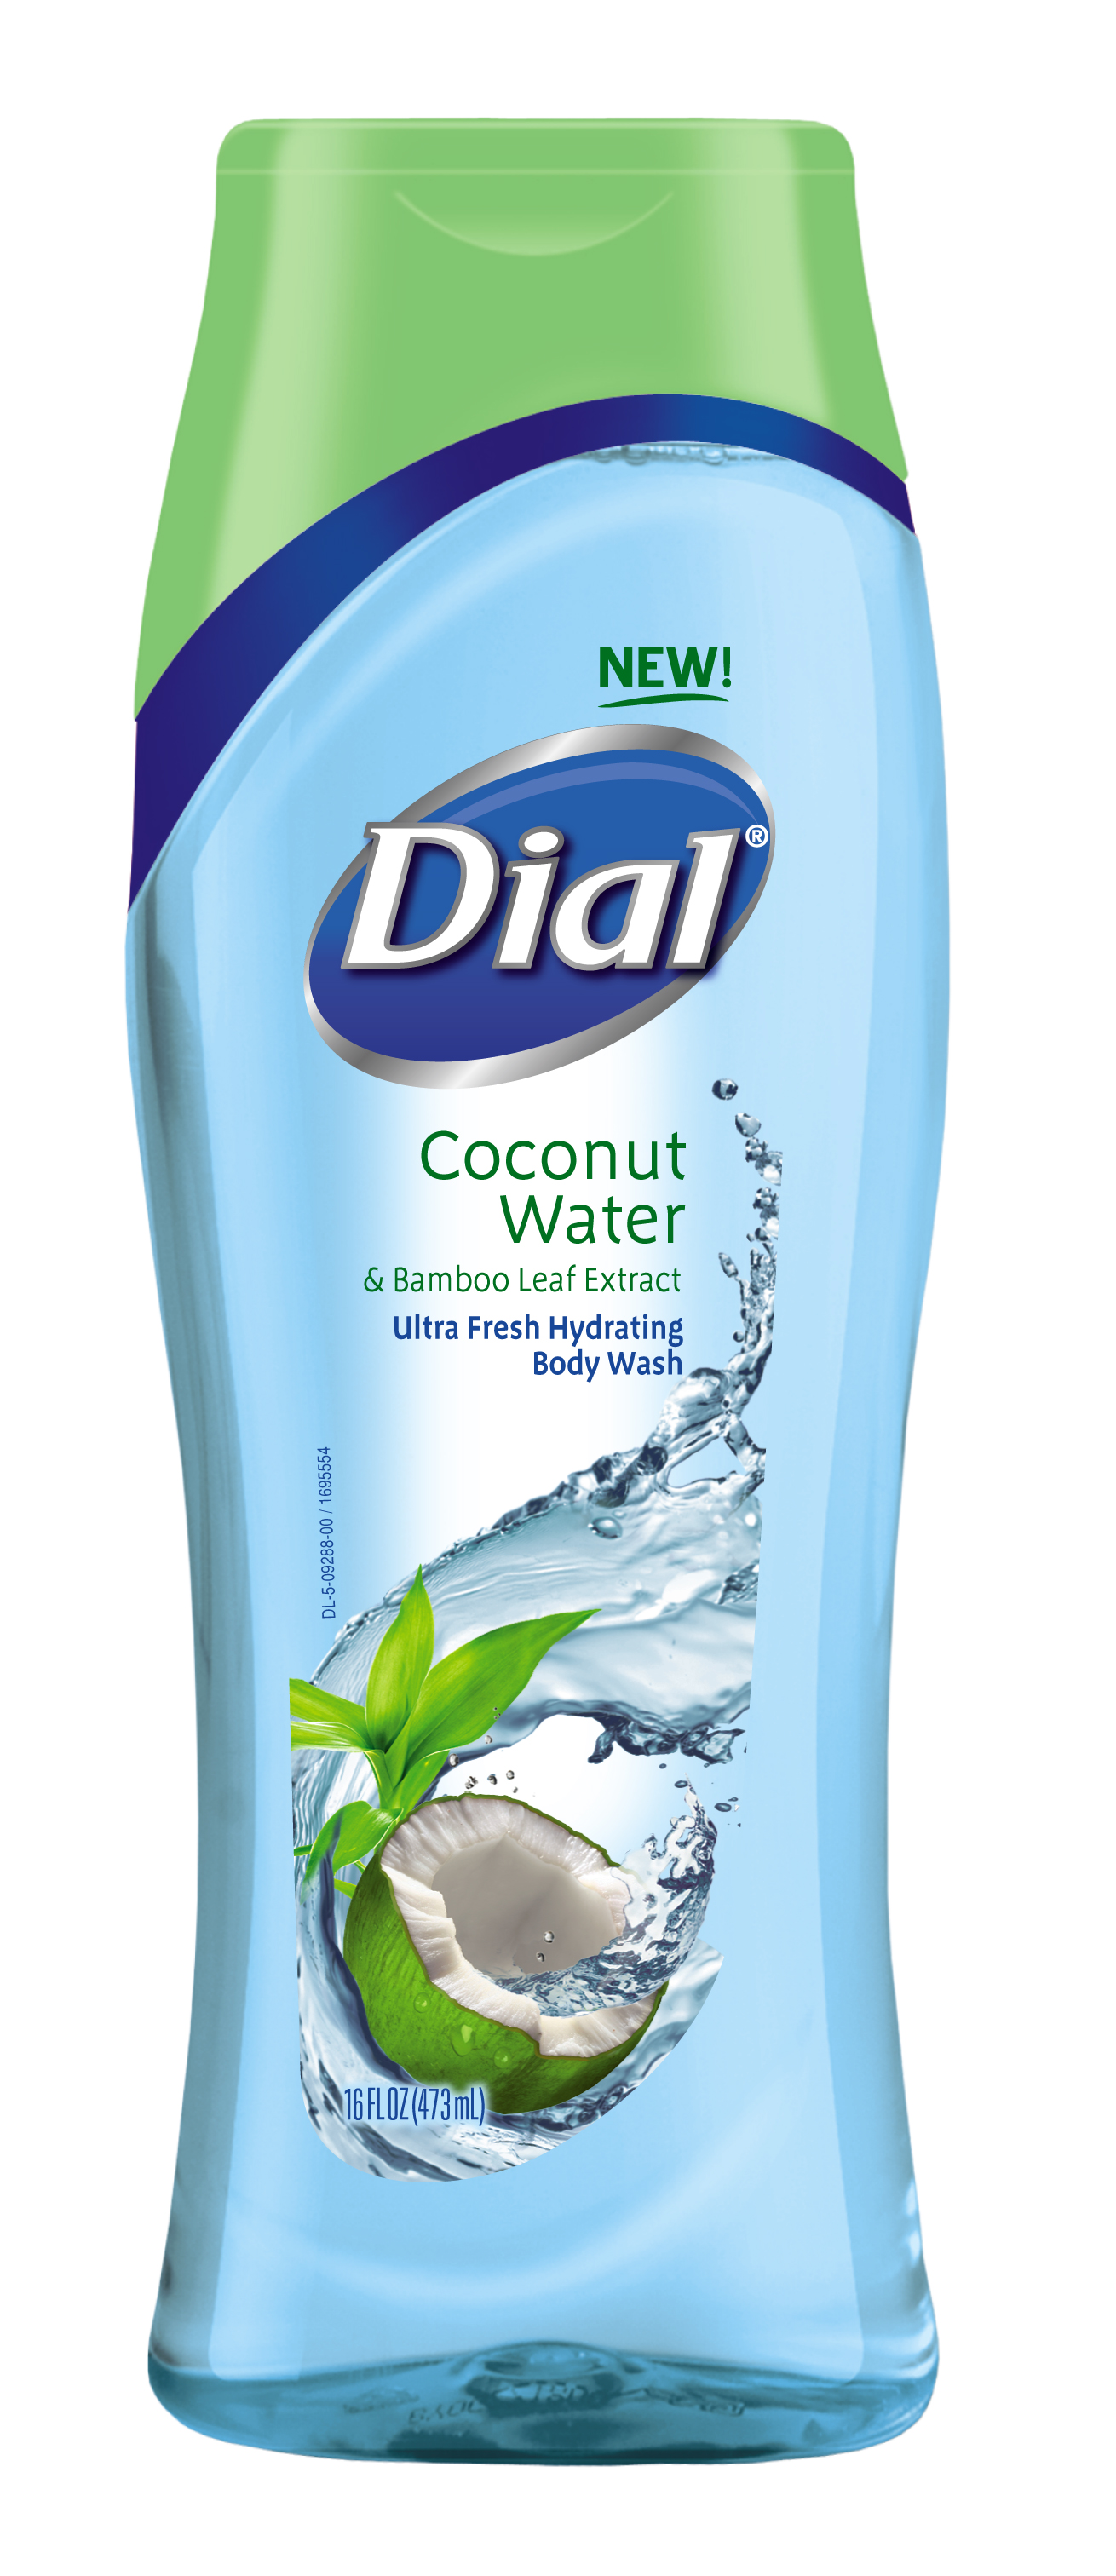 Looking for Some Hydrating Body Wash…And I Think I Found It – Dial Coconut Body Wash